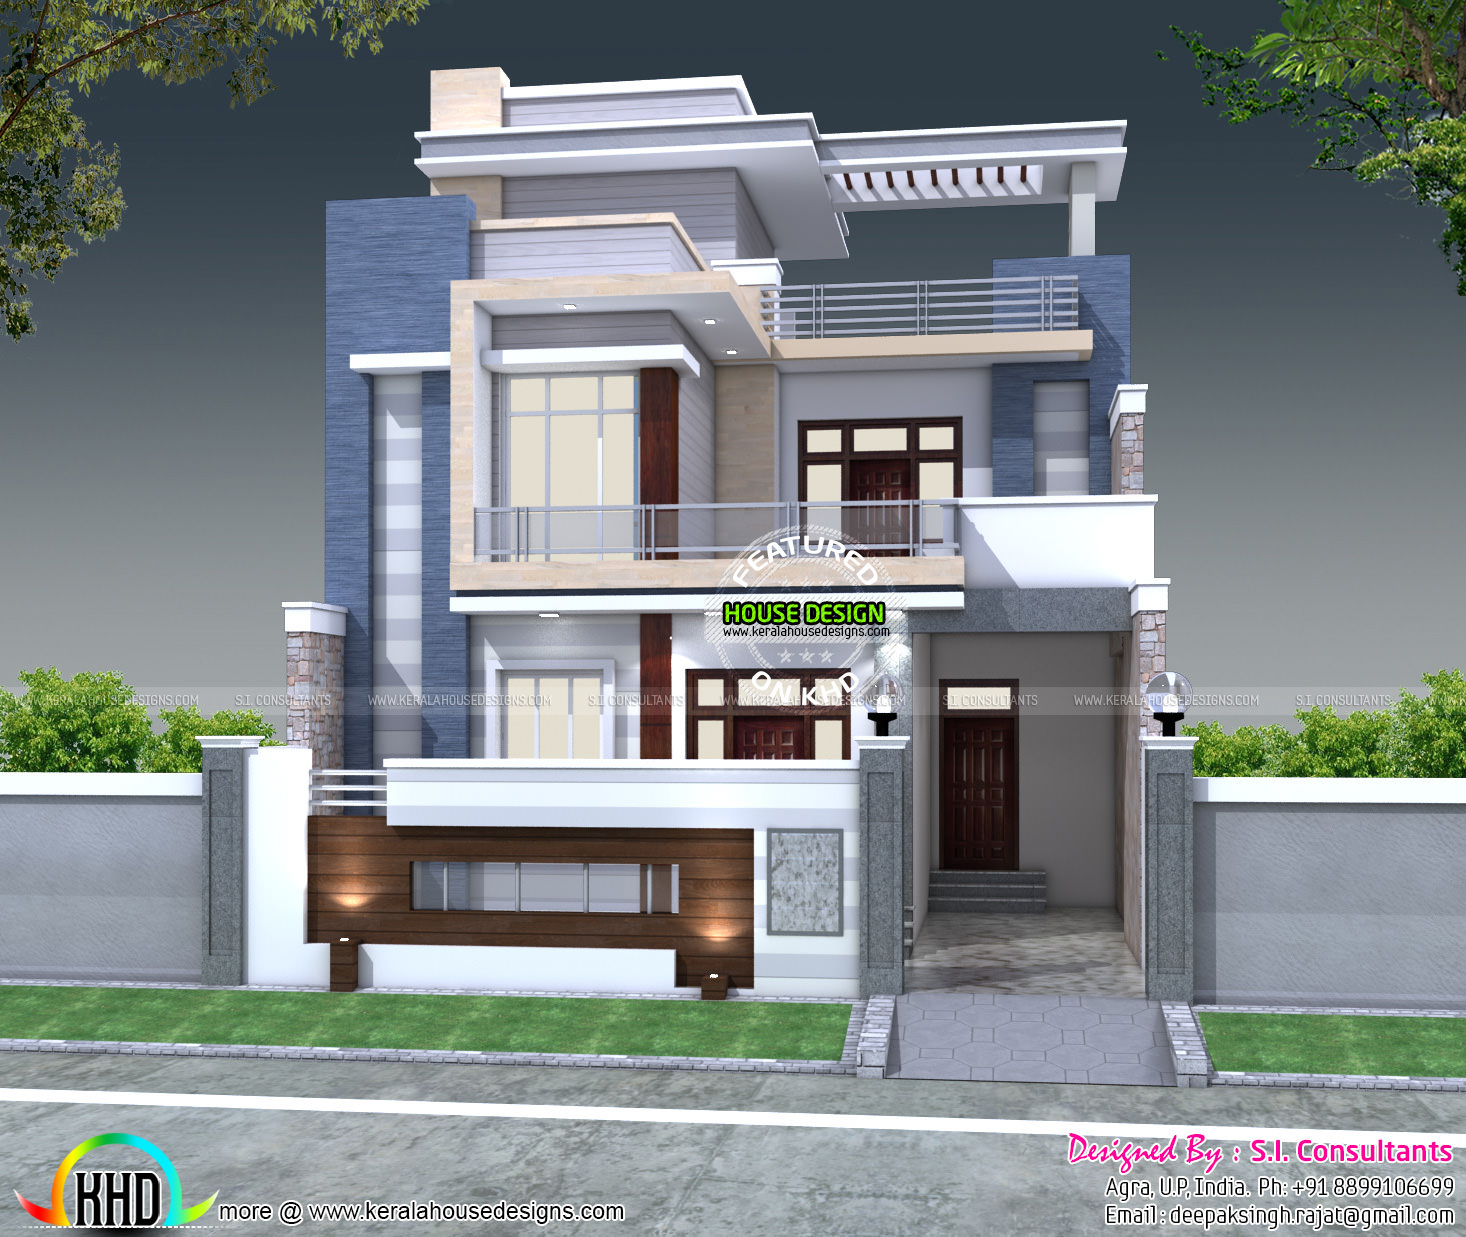 5 bedroom 30x60 house plan architecture kerala home for 2 bedroom house designs in india